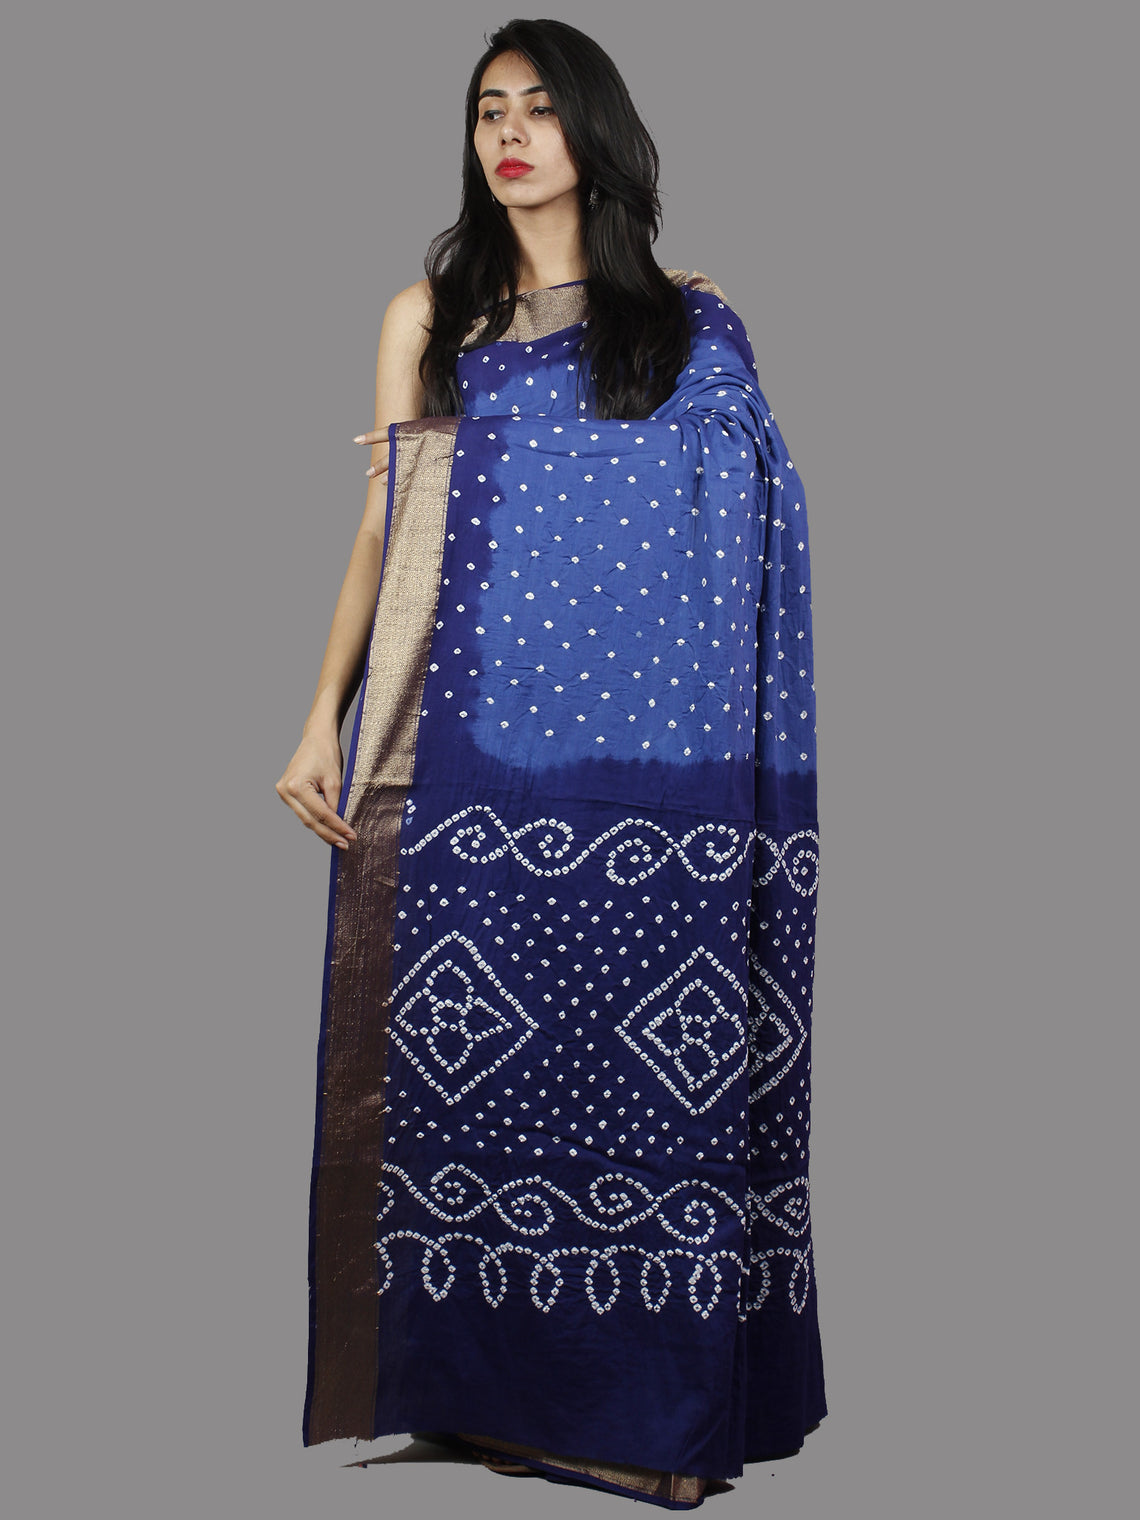 Blue White Hand Tie & Dye Bandhej Glace Cotton Saree With Resham Border - S031701388